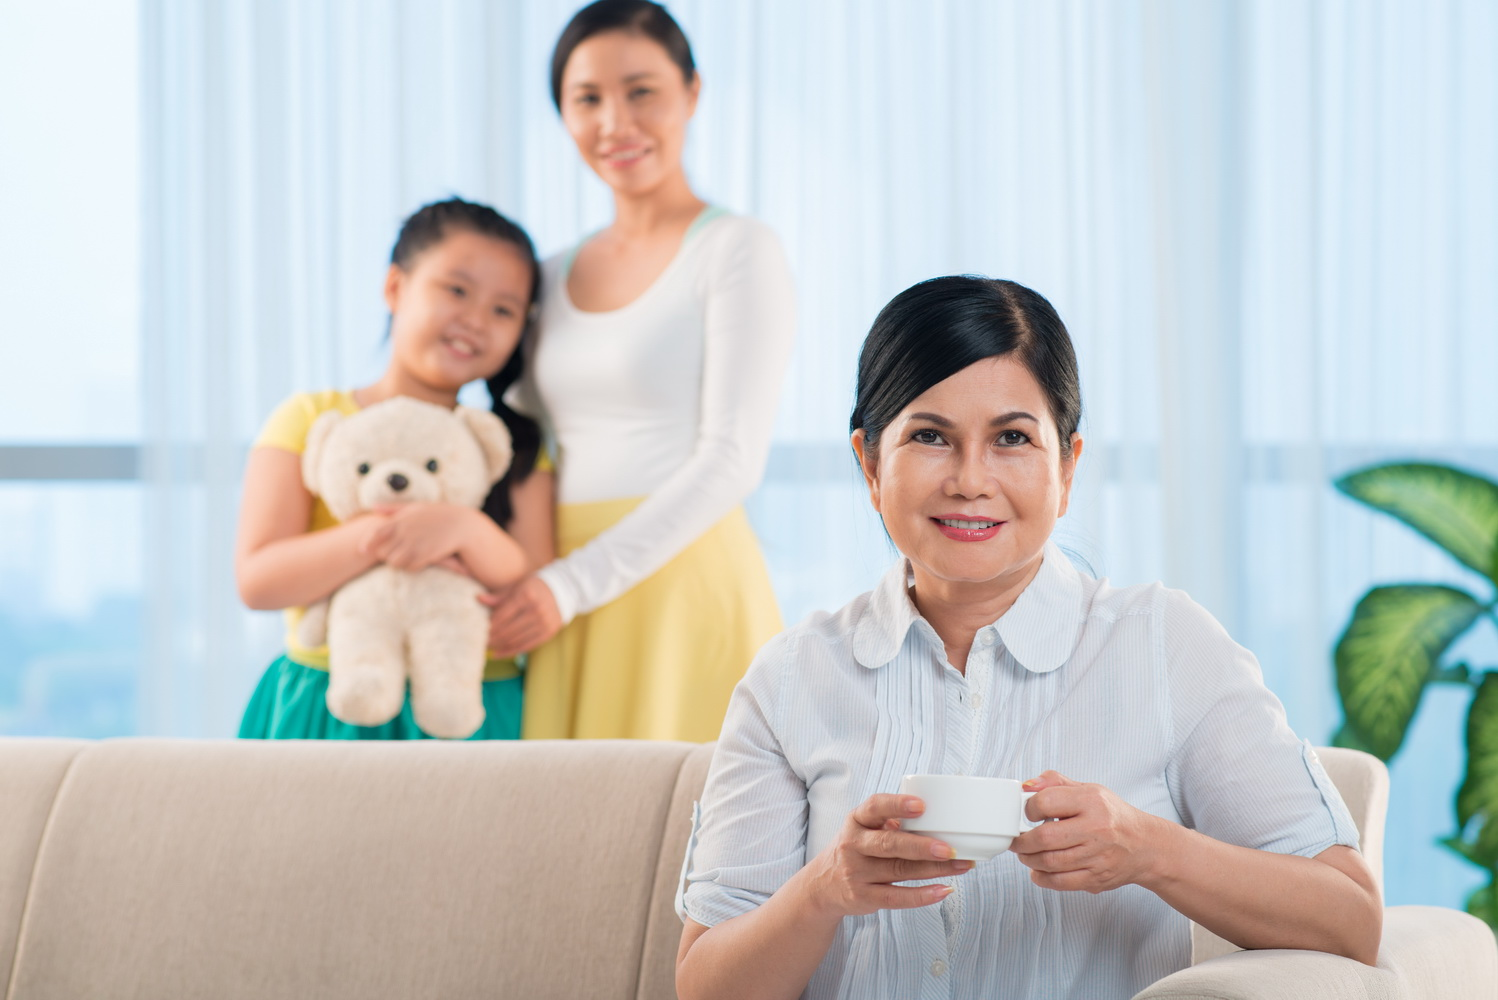 Portrait of happy grandmother with cup of tea looking at camera wit hher daughter and granddaughter on background